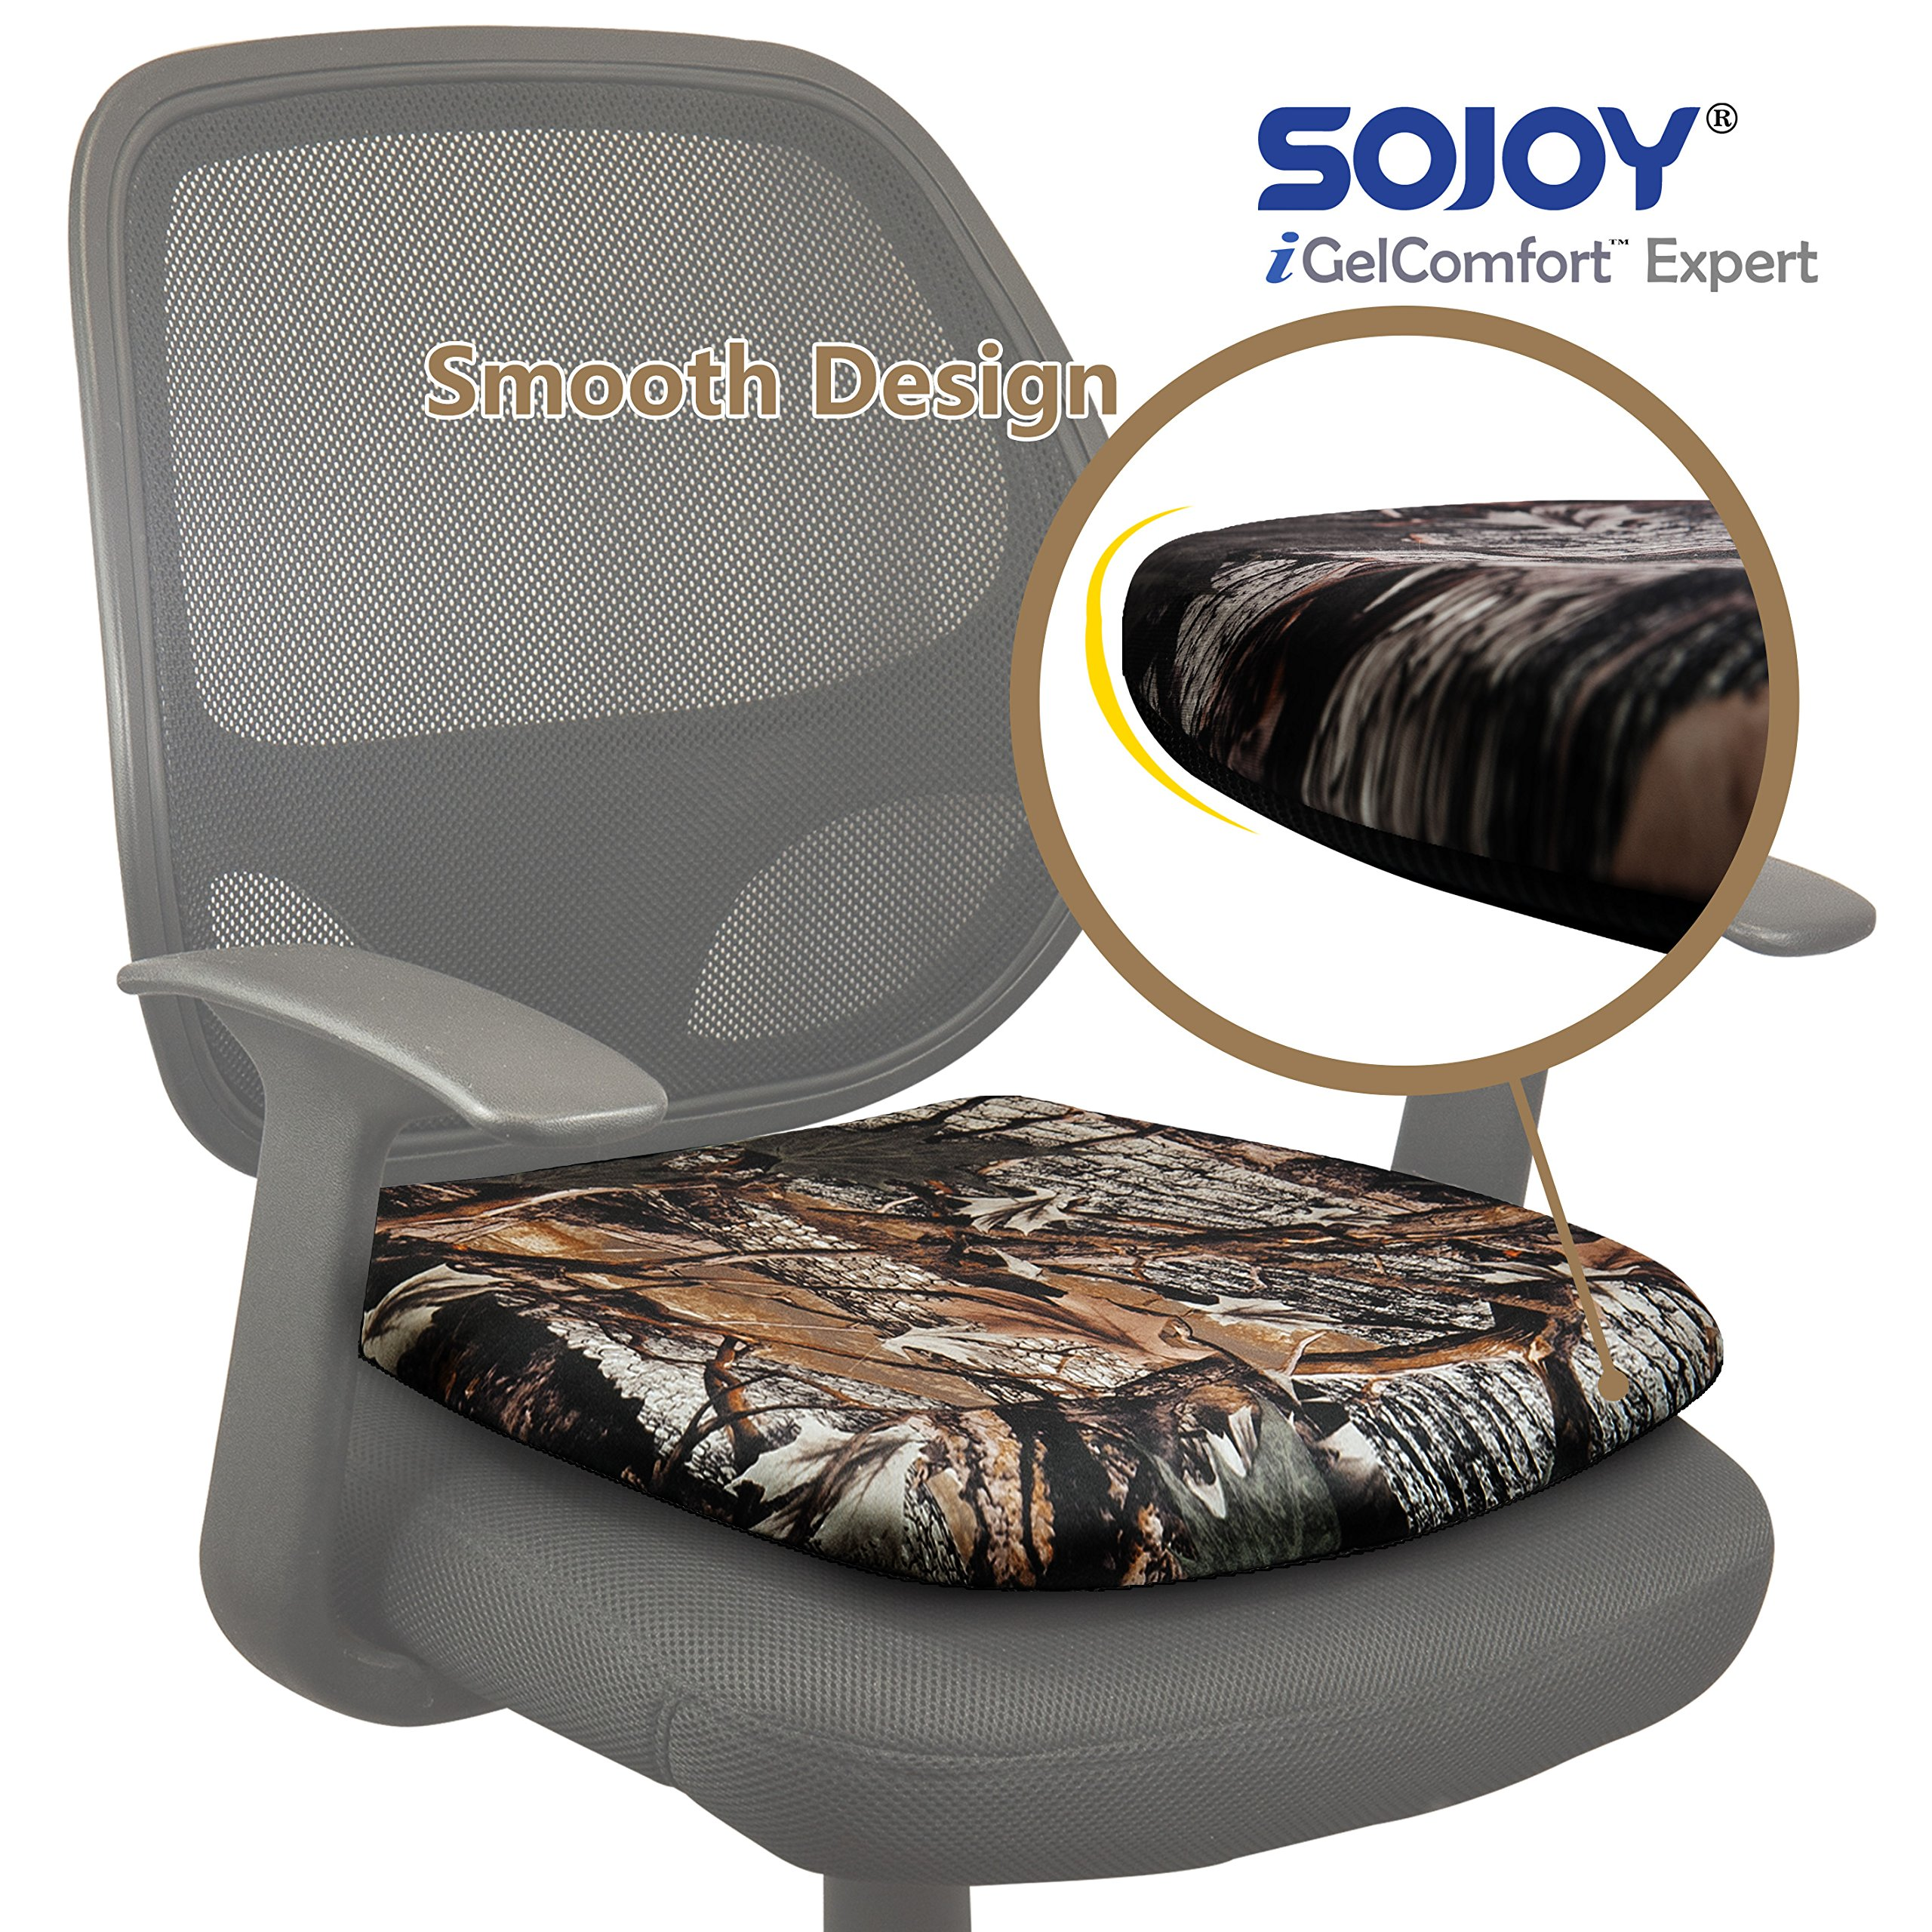 Sojoy iGelComfort Breathable Orthopedic Coccyx Gel Seat Cushion (Camouflage)